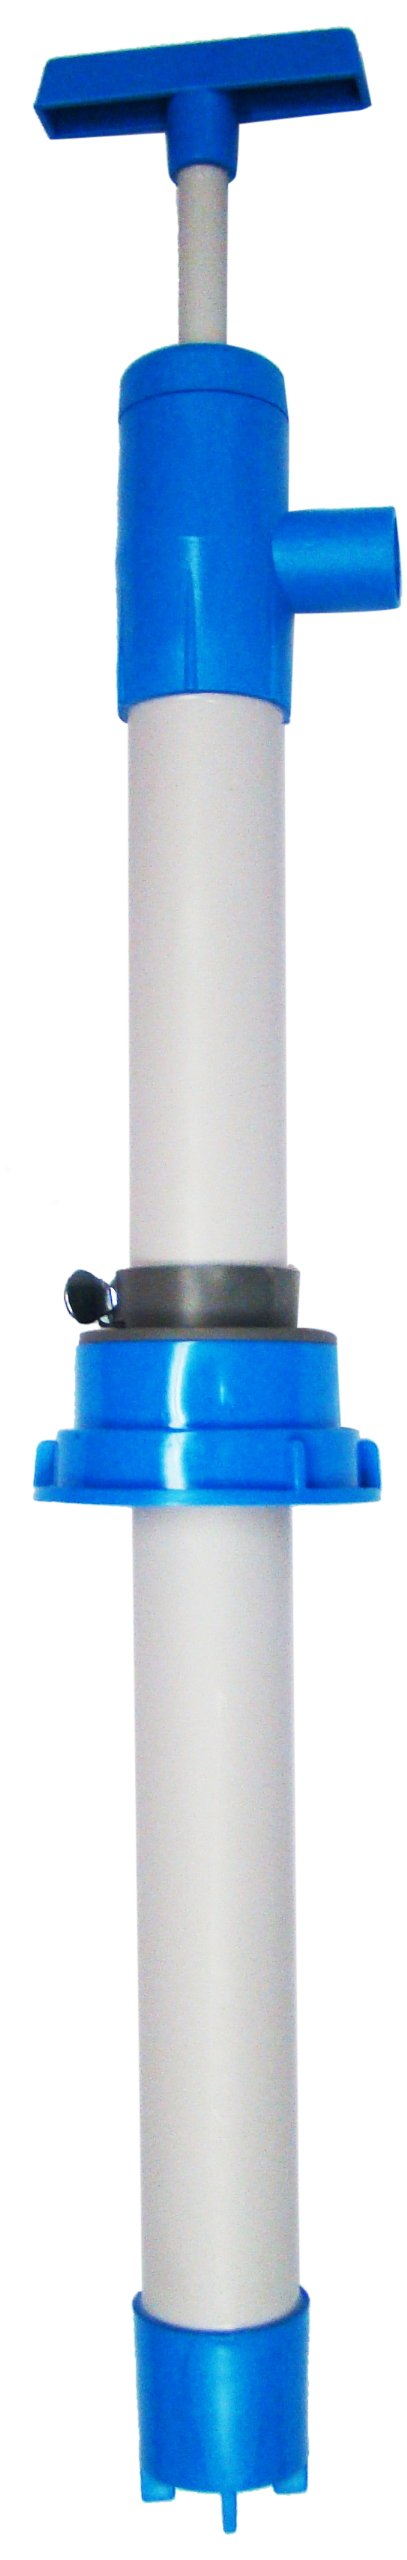 Action Pump 7015 All PVC Siphon Pump for 5-6 Gallon Pails, 2'' NPS Bung Adapter